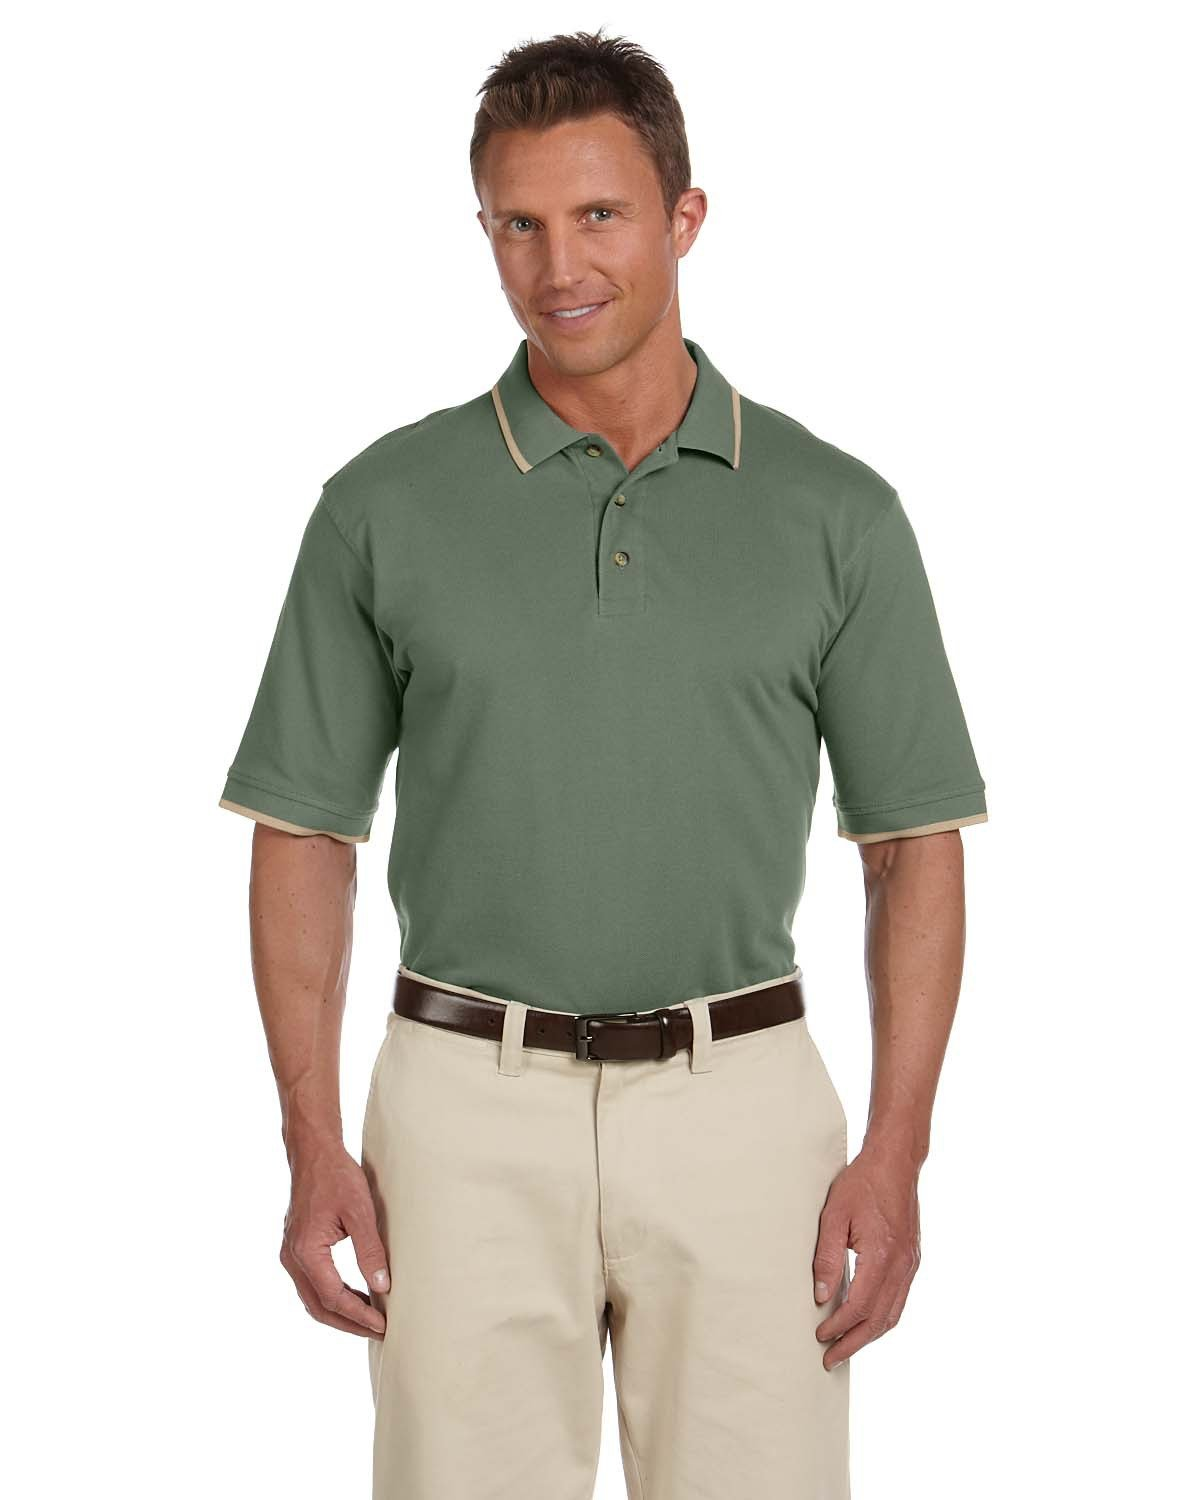 Harriton Adult 6 oz. Short-Sleeve Piqué Polo with Tipping DILL/ STONE